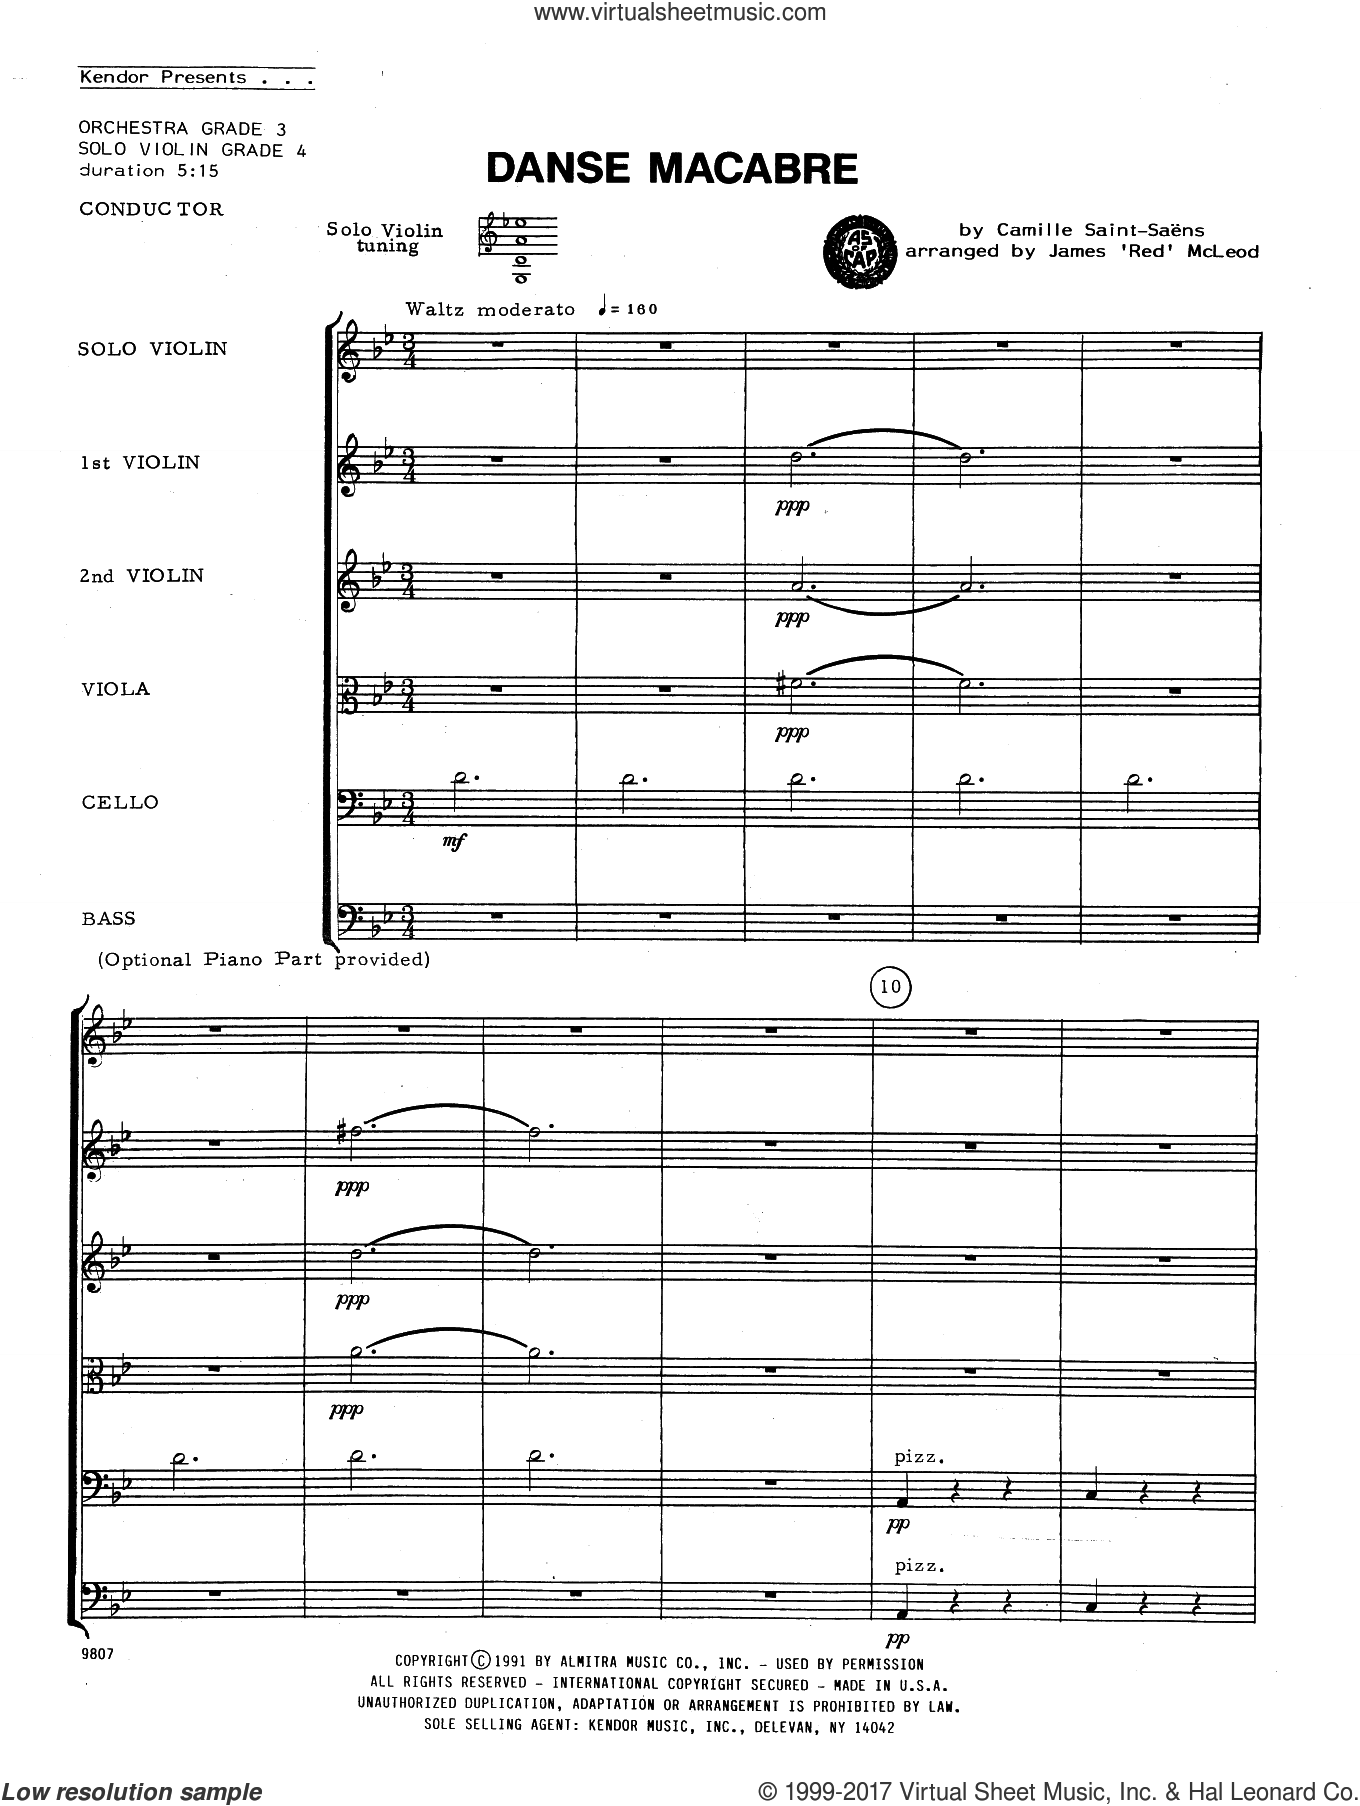 Danse Macabre (COMPLETE) sheet music for orchestra by Camille Saint-Saens and James 'Red' McLeod, classical score, intermediate skill level